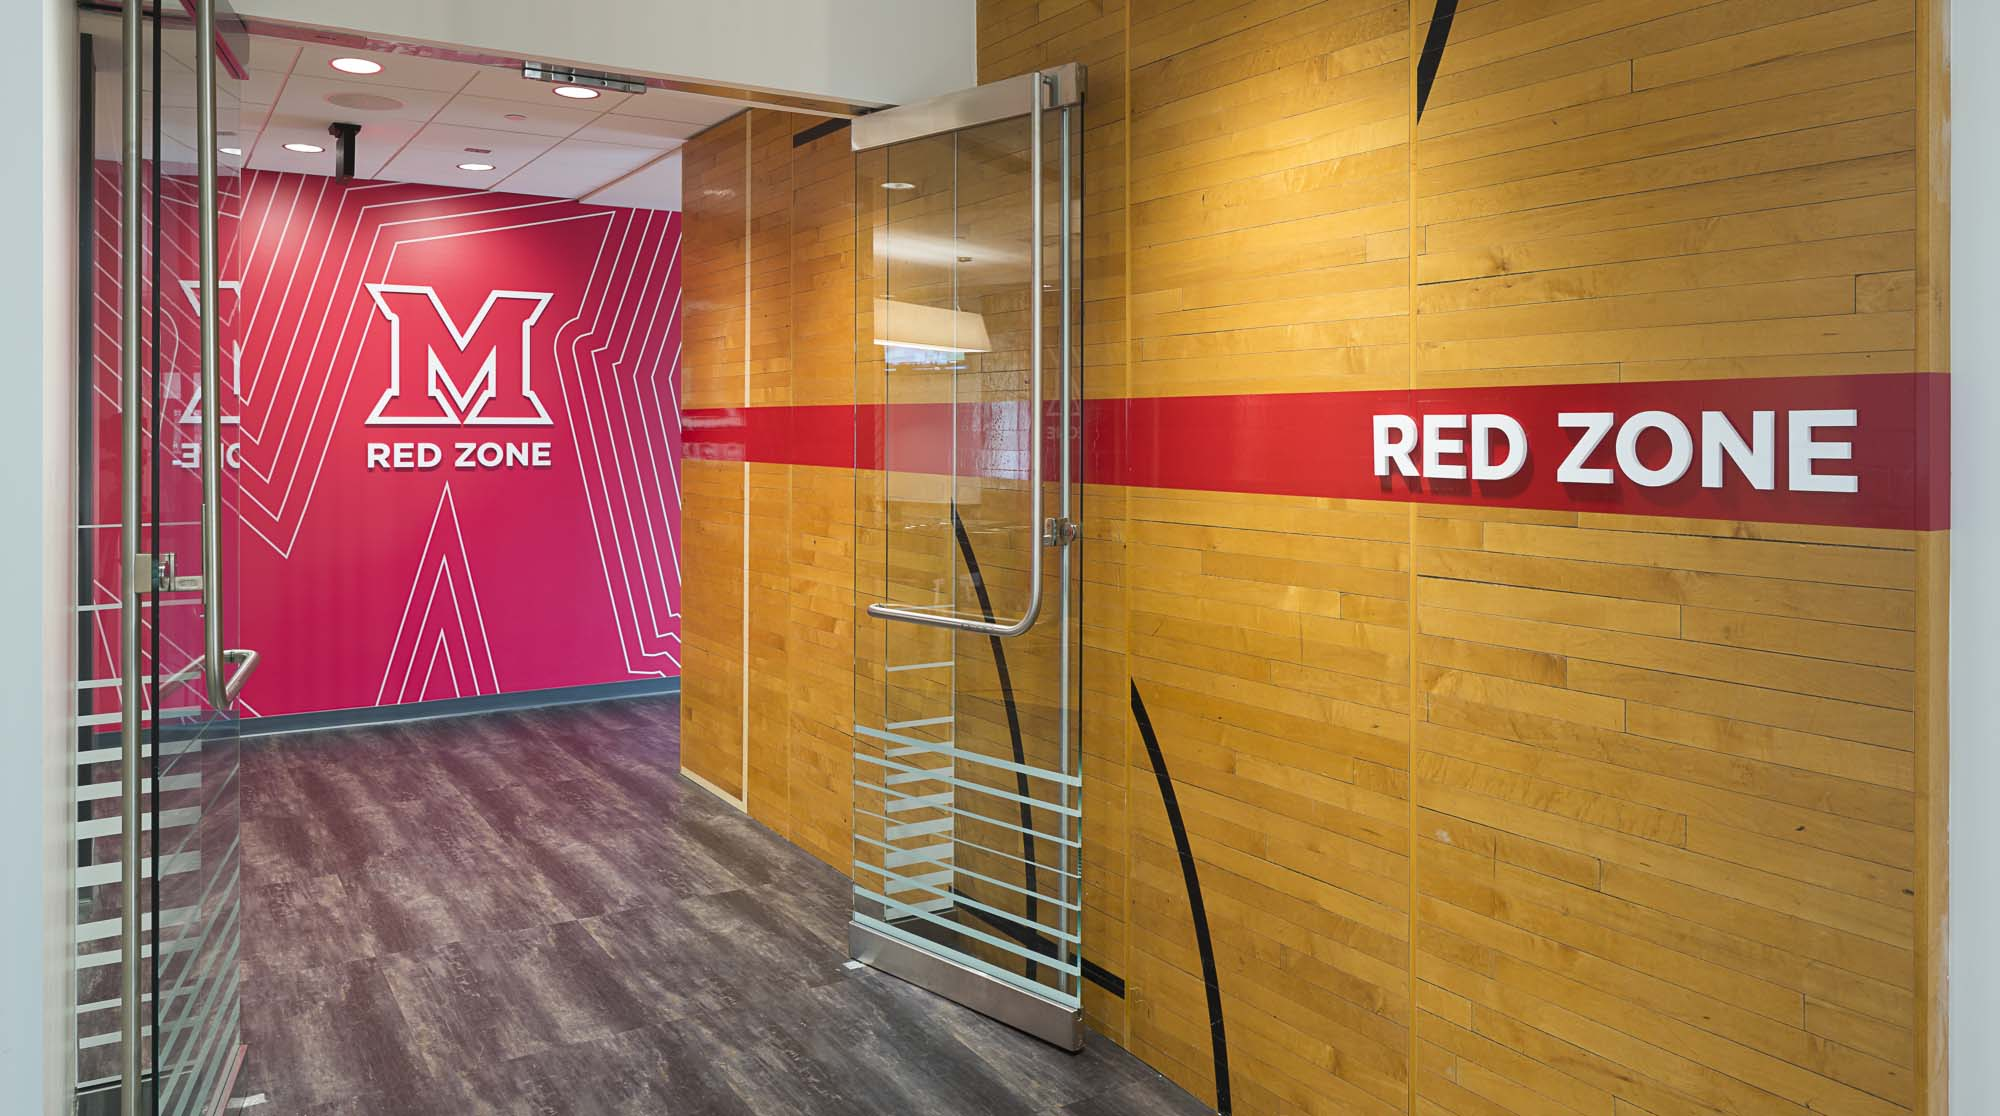 Entry way to the Red Zone at Miami University